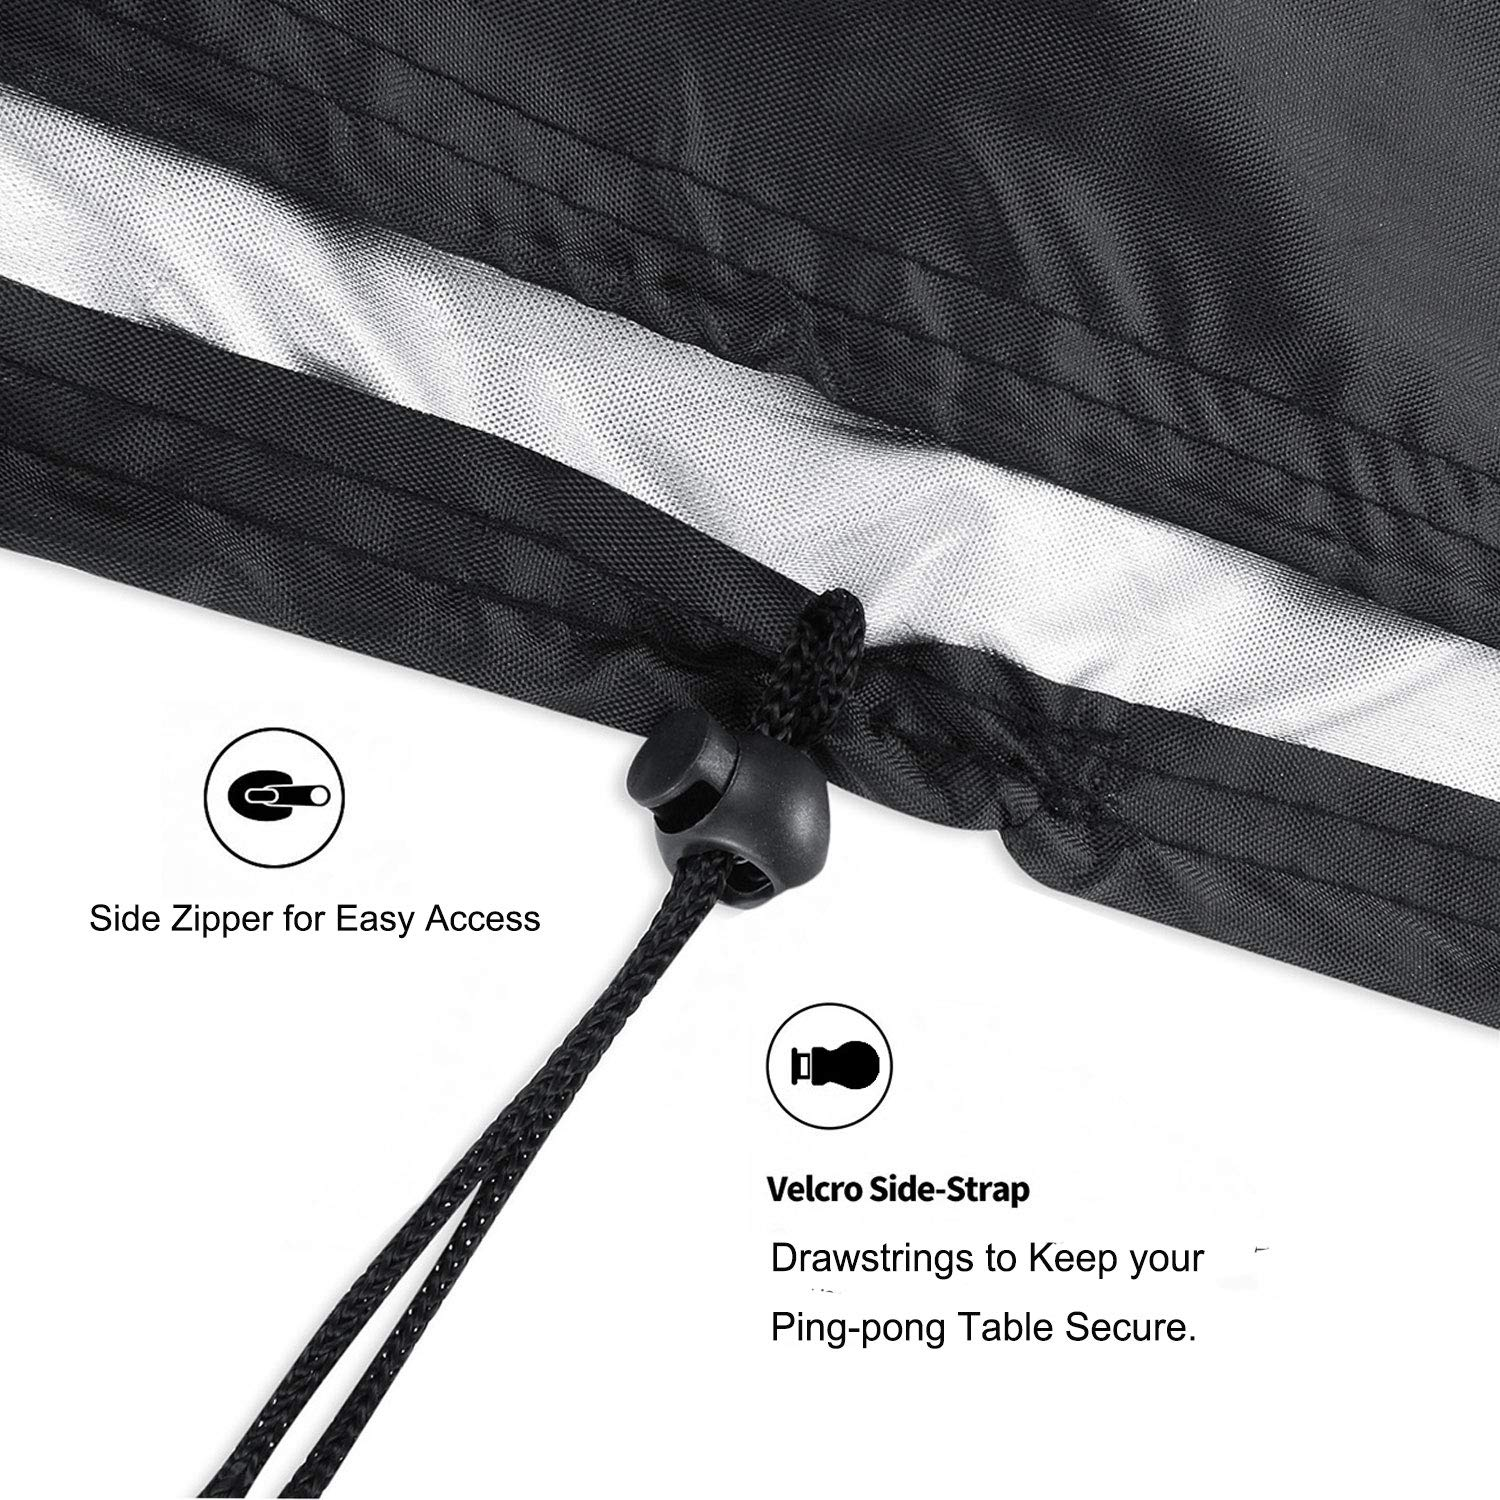 Black 420D Polyester Oxford Ping Pong Table Cover Outdoor iiSPORT Waterproof Table Tennis Table Cover Weatherproof 64 W x 27 D x 72 H,Durable Table Tennis Table Protector